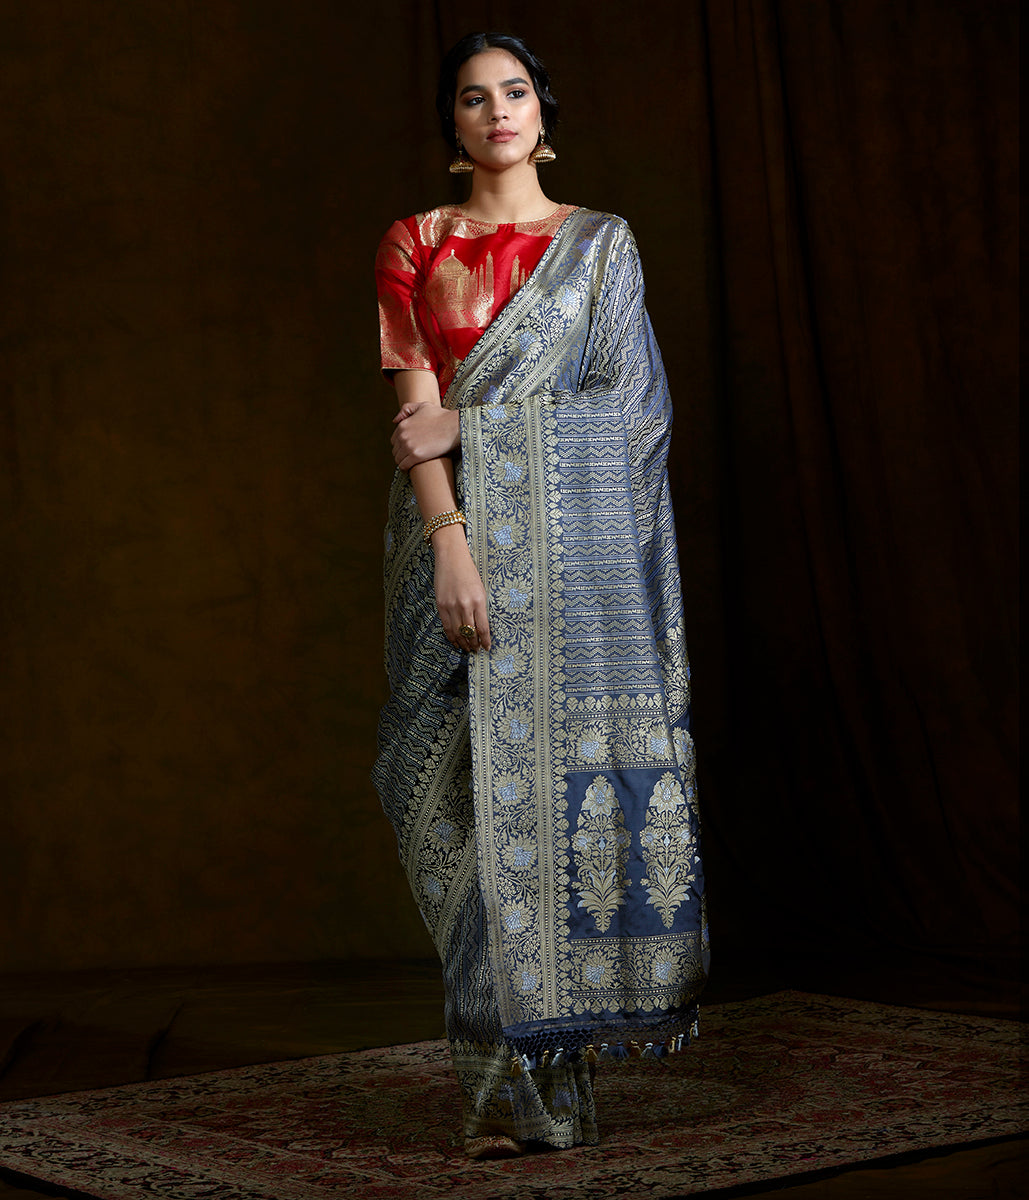 Handwoven banarasi katan silk saree woven in fine kimkhab weave with kadhwa borders and pallu